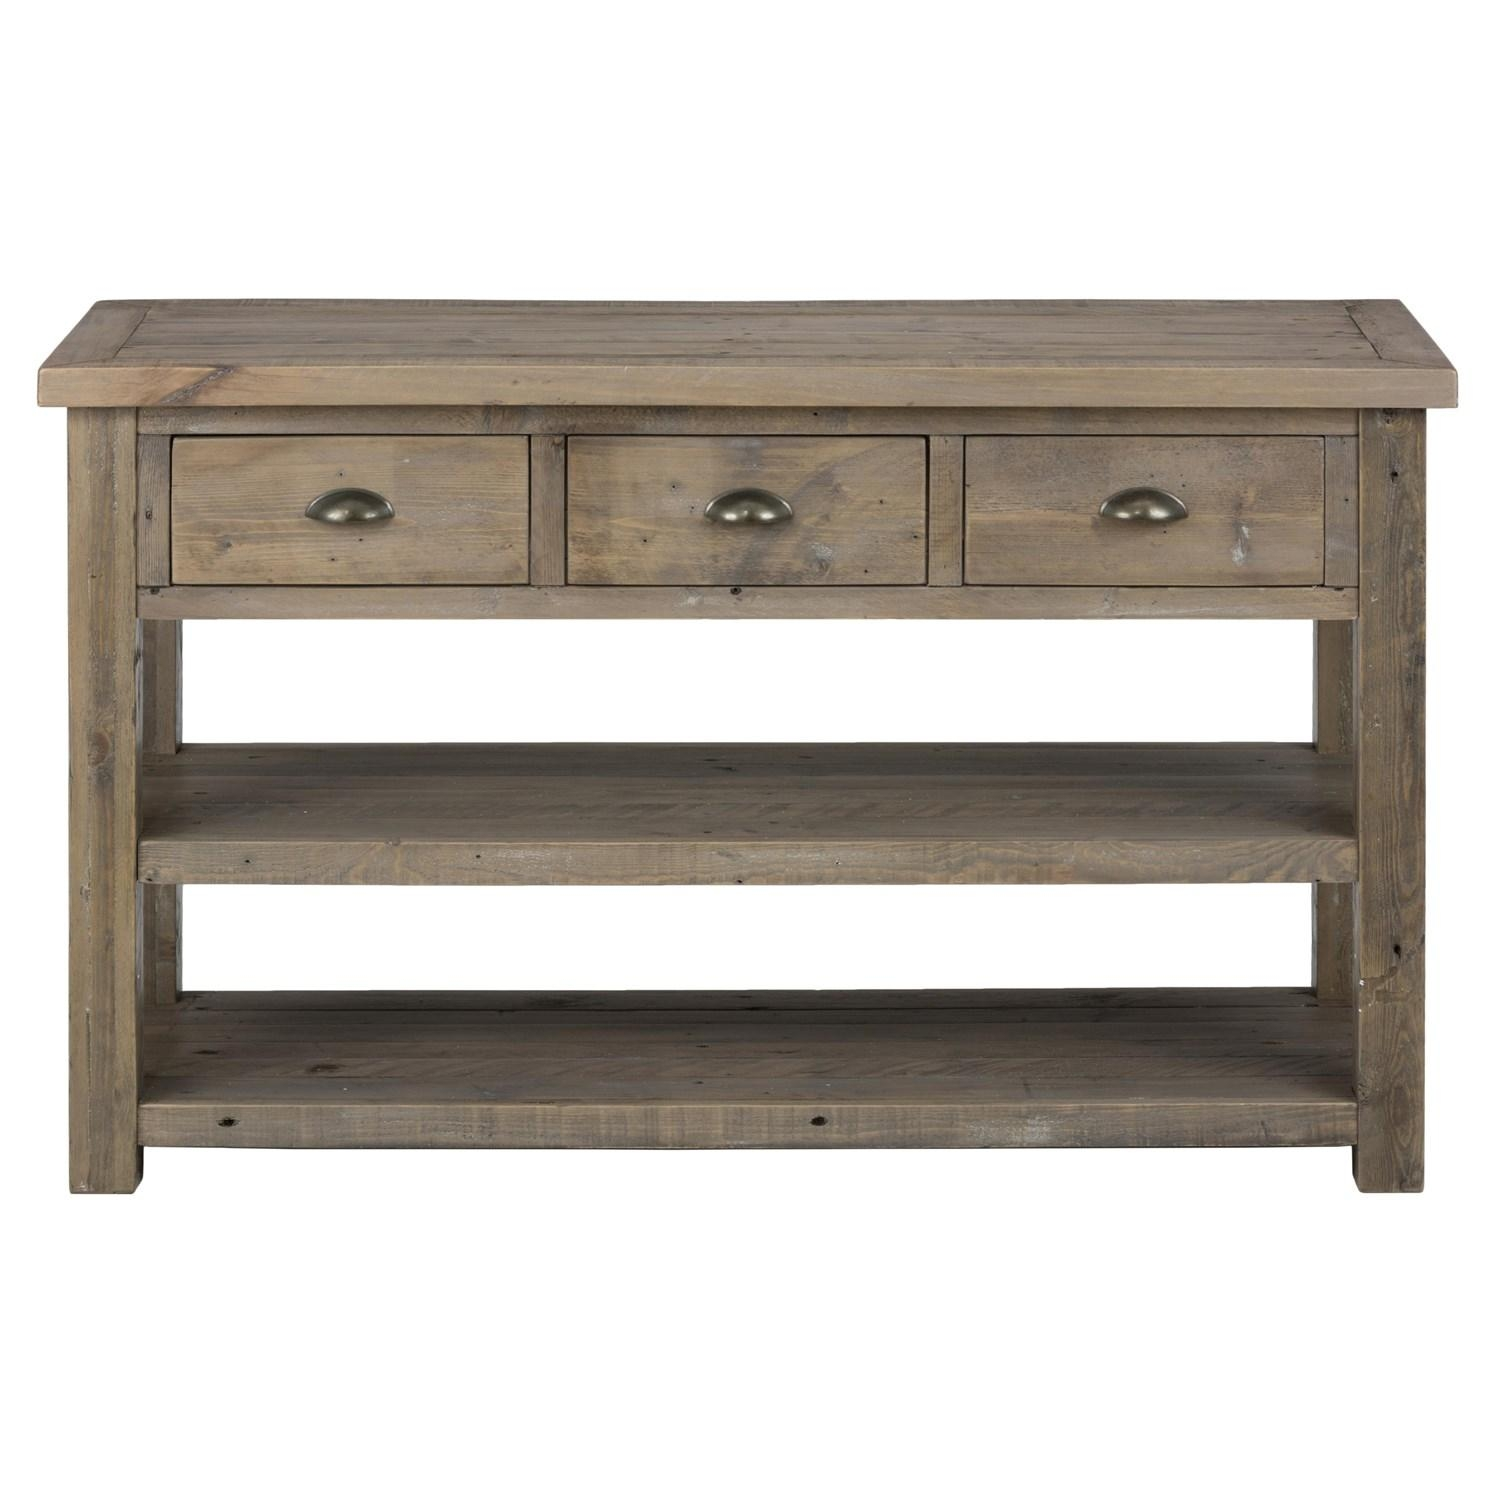 Jofran 940 4 Slater Mill Pine Sofa Table With 3 Drawers And 2 Regarding Sofa Table Drawers (Image 8 of 20)